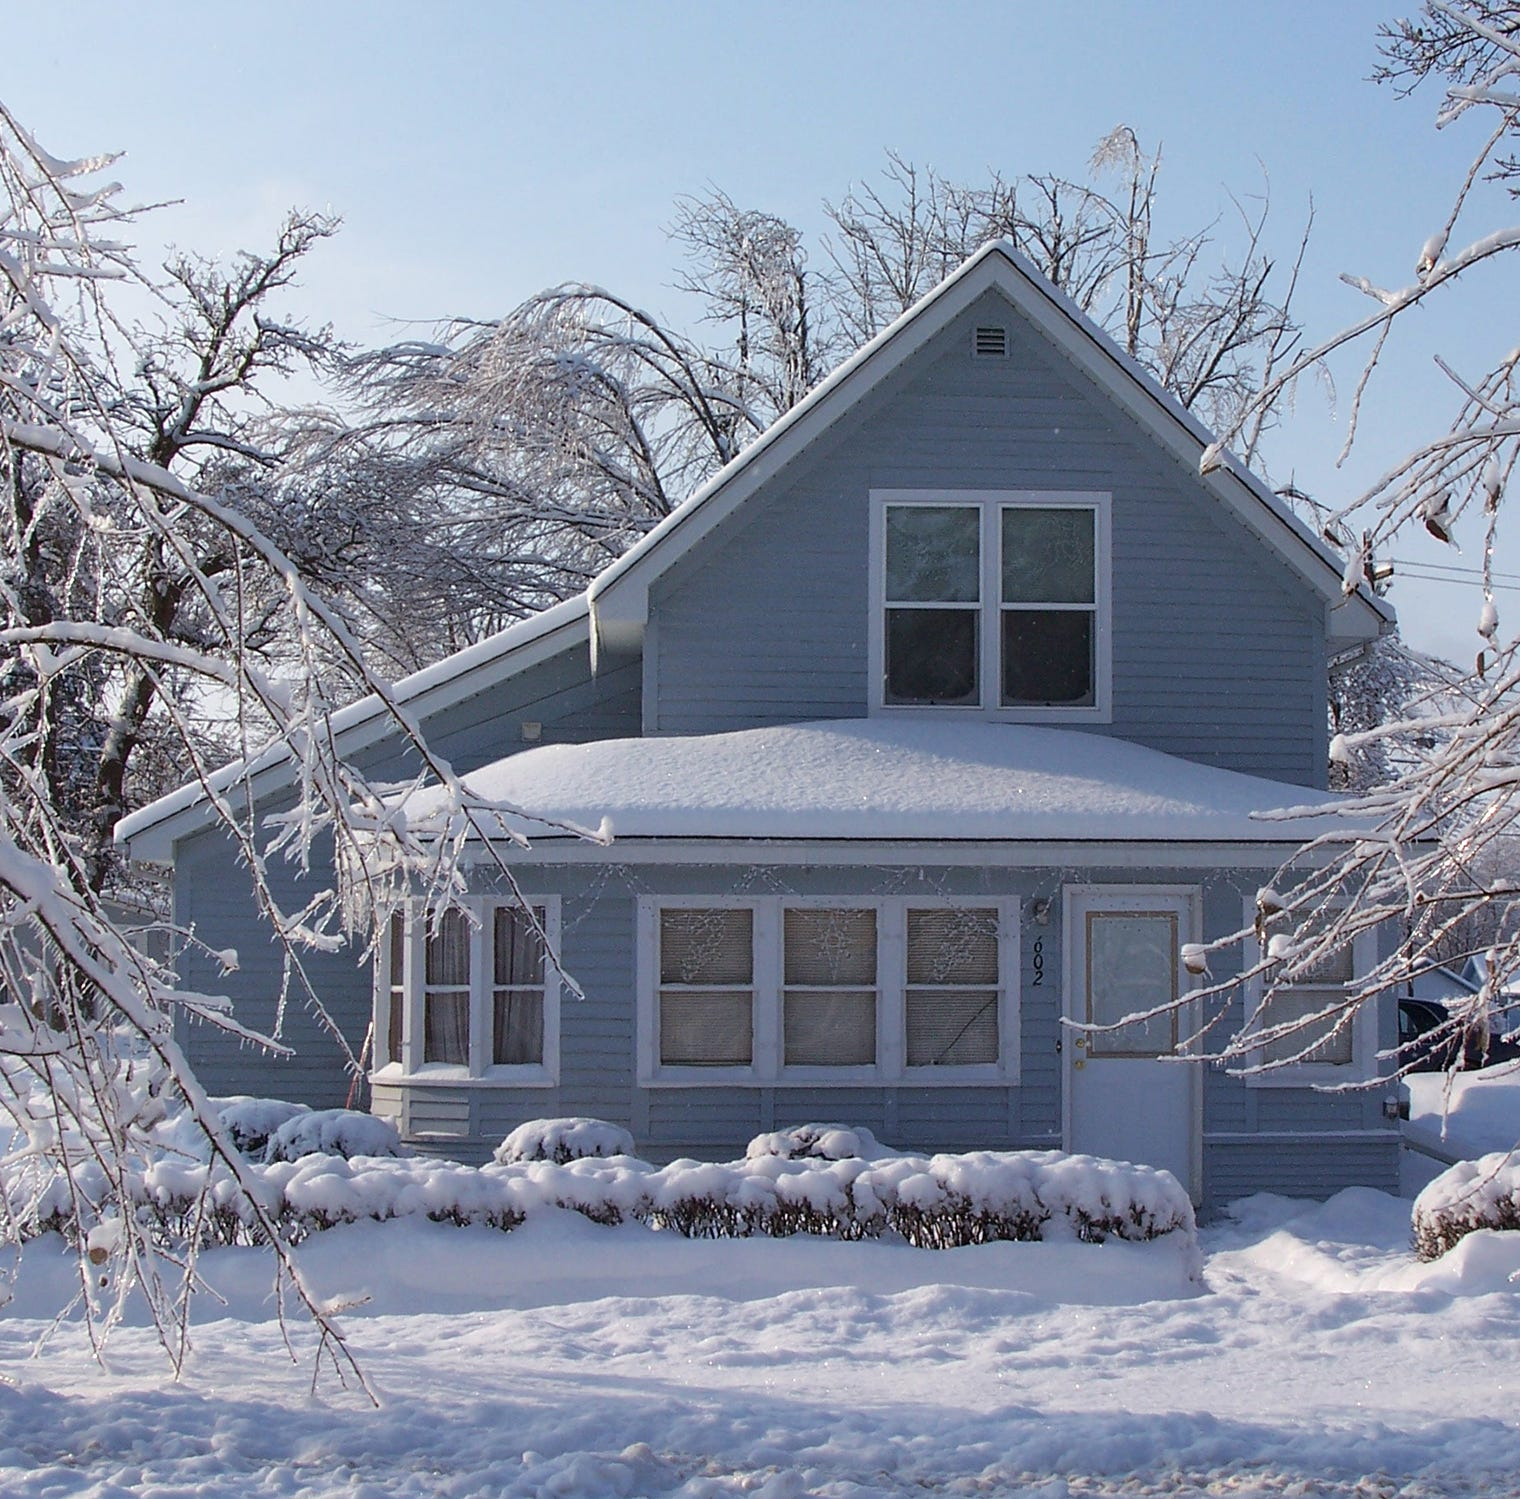 4 Reasons to Become a Winter Homebuyer